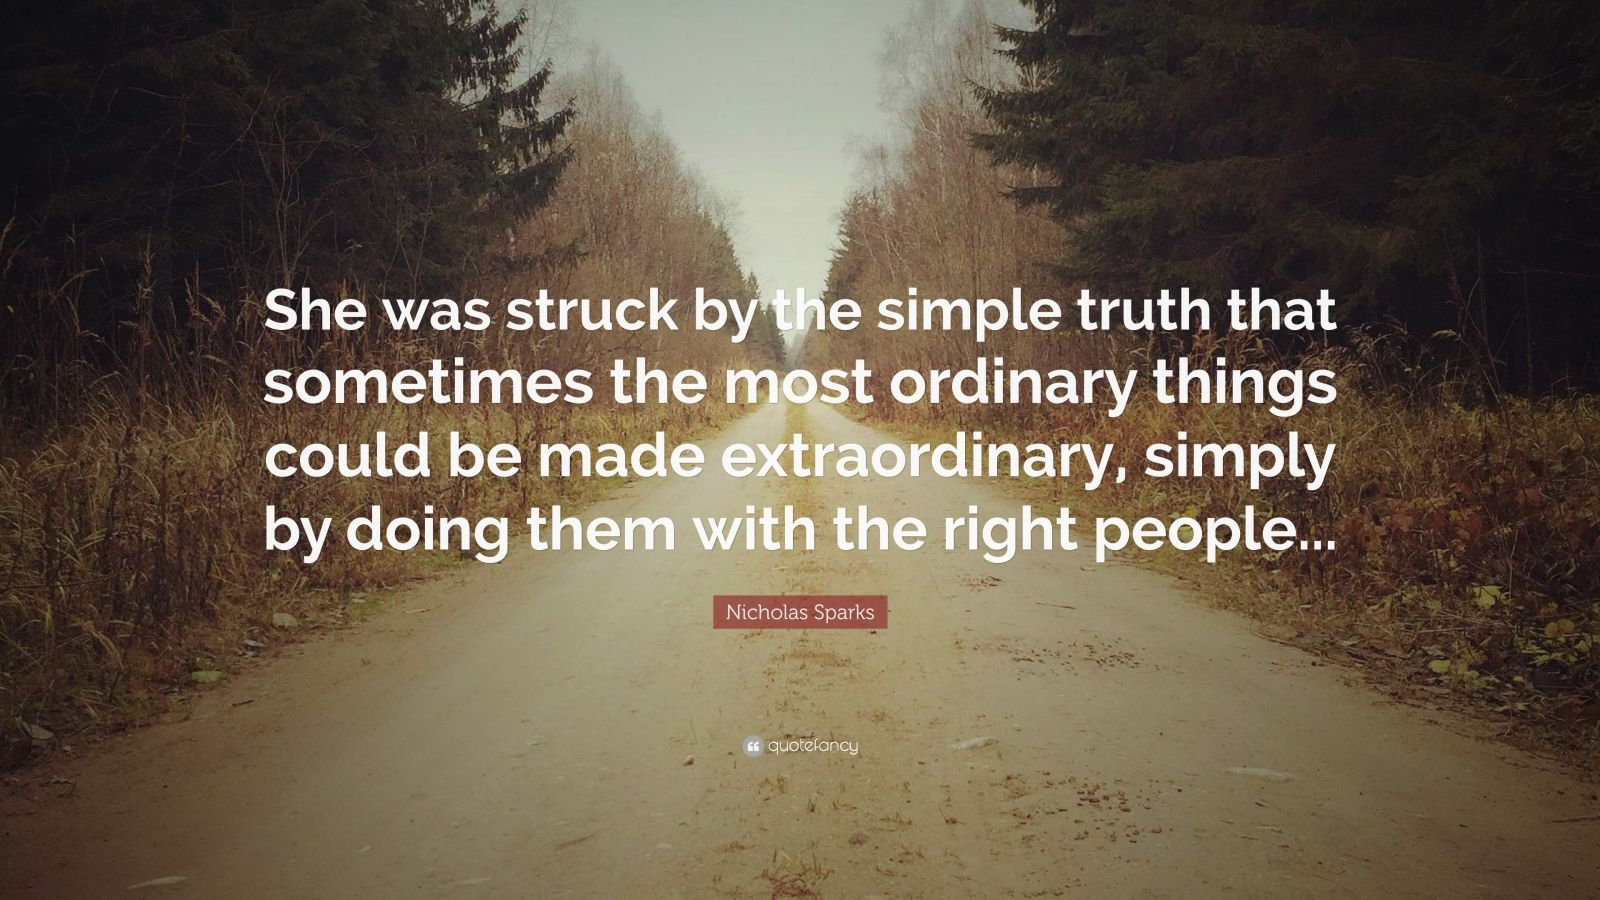 "Nicholas Sparks Quote: ""She was struck by the simple truth that sometimes the most ordinary things could be made extraordinary, simply by doing them with the right people..."""